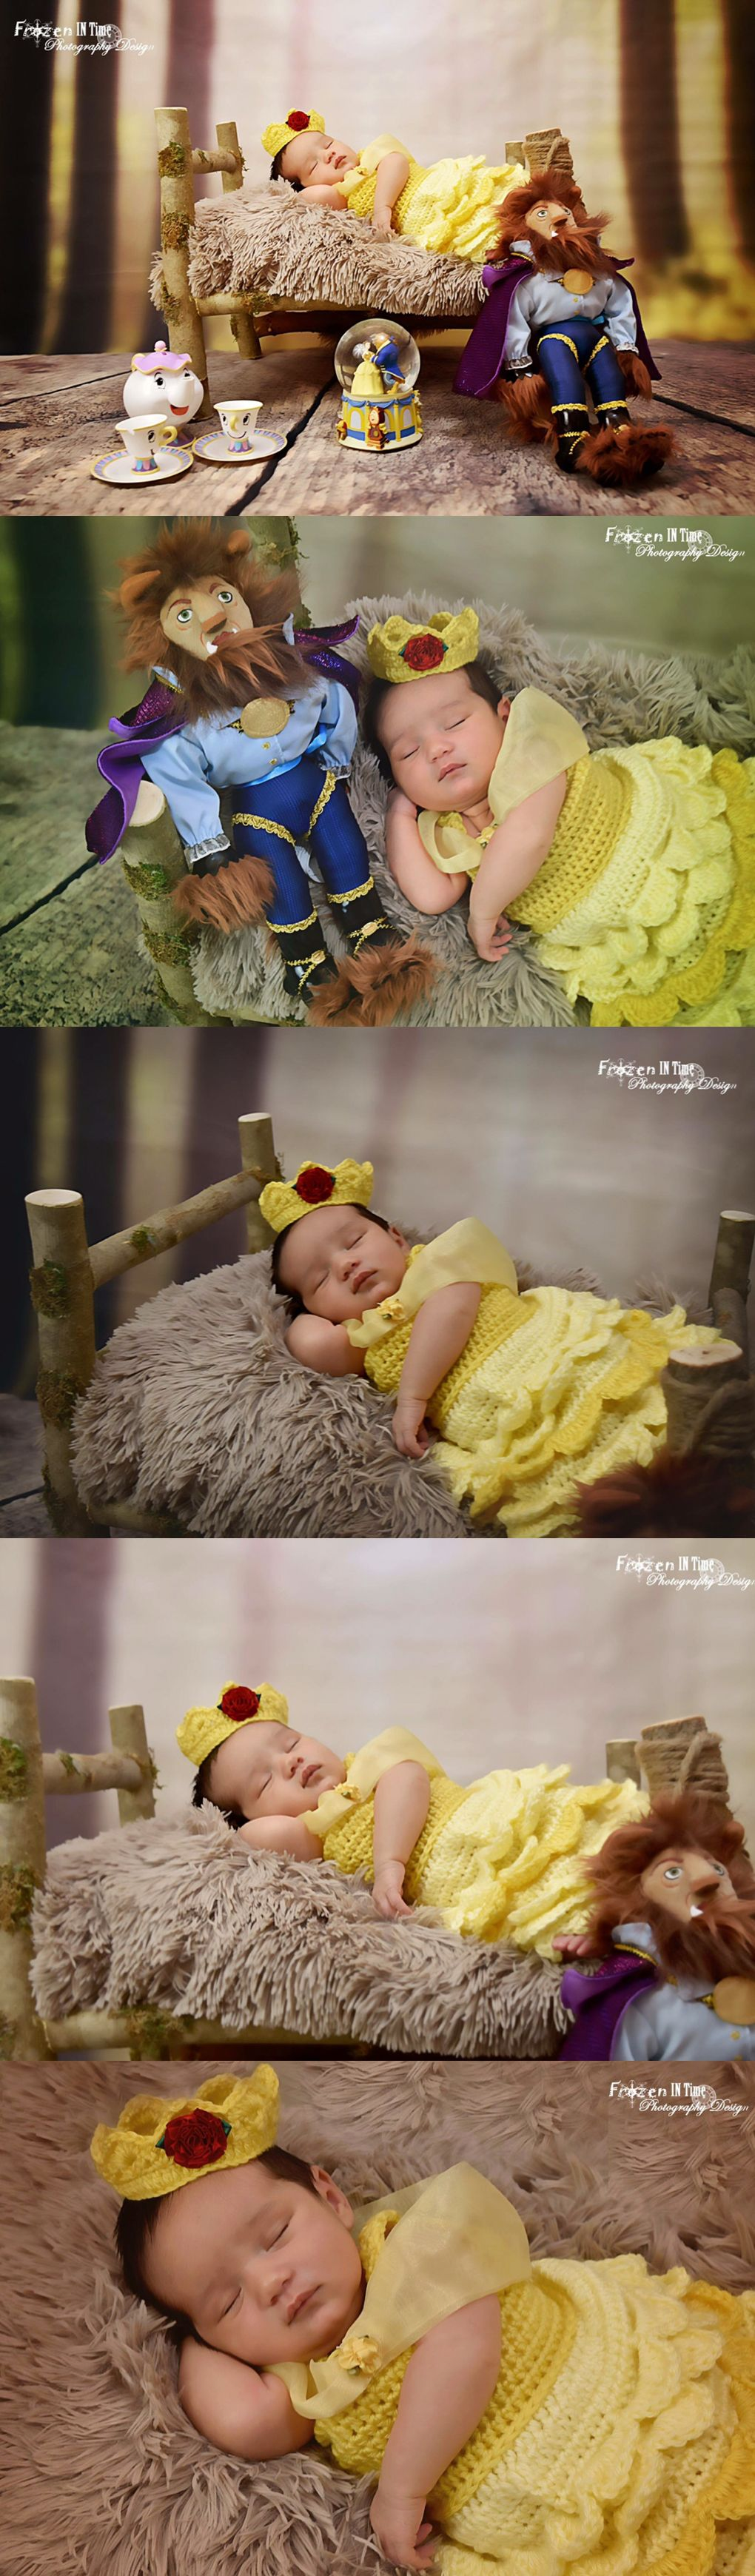 Disney inspired photoshoot beauty and the beast belle disney princess disney newborn shoot disney newborn photography baby disney baby belle photo